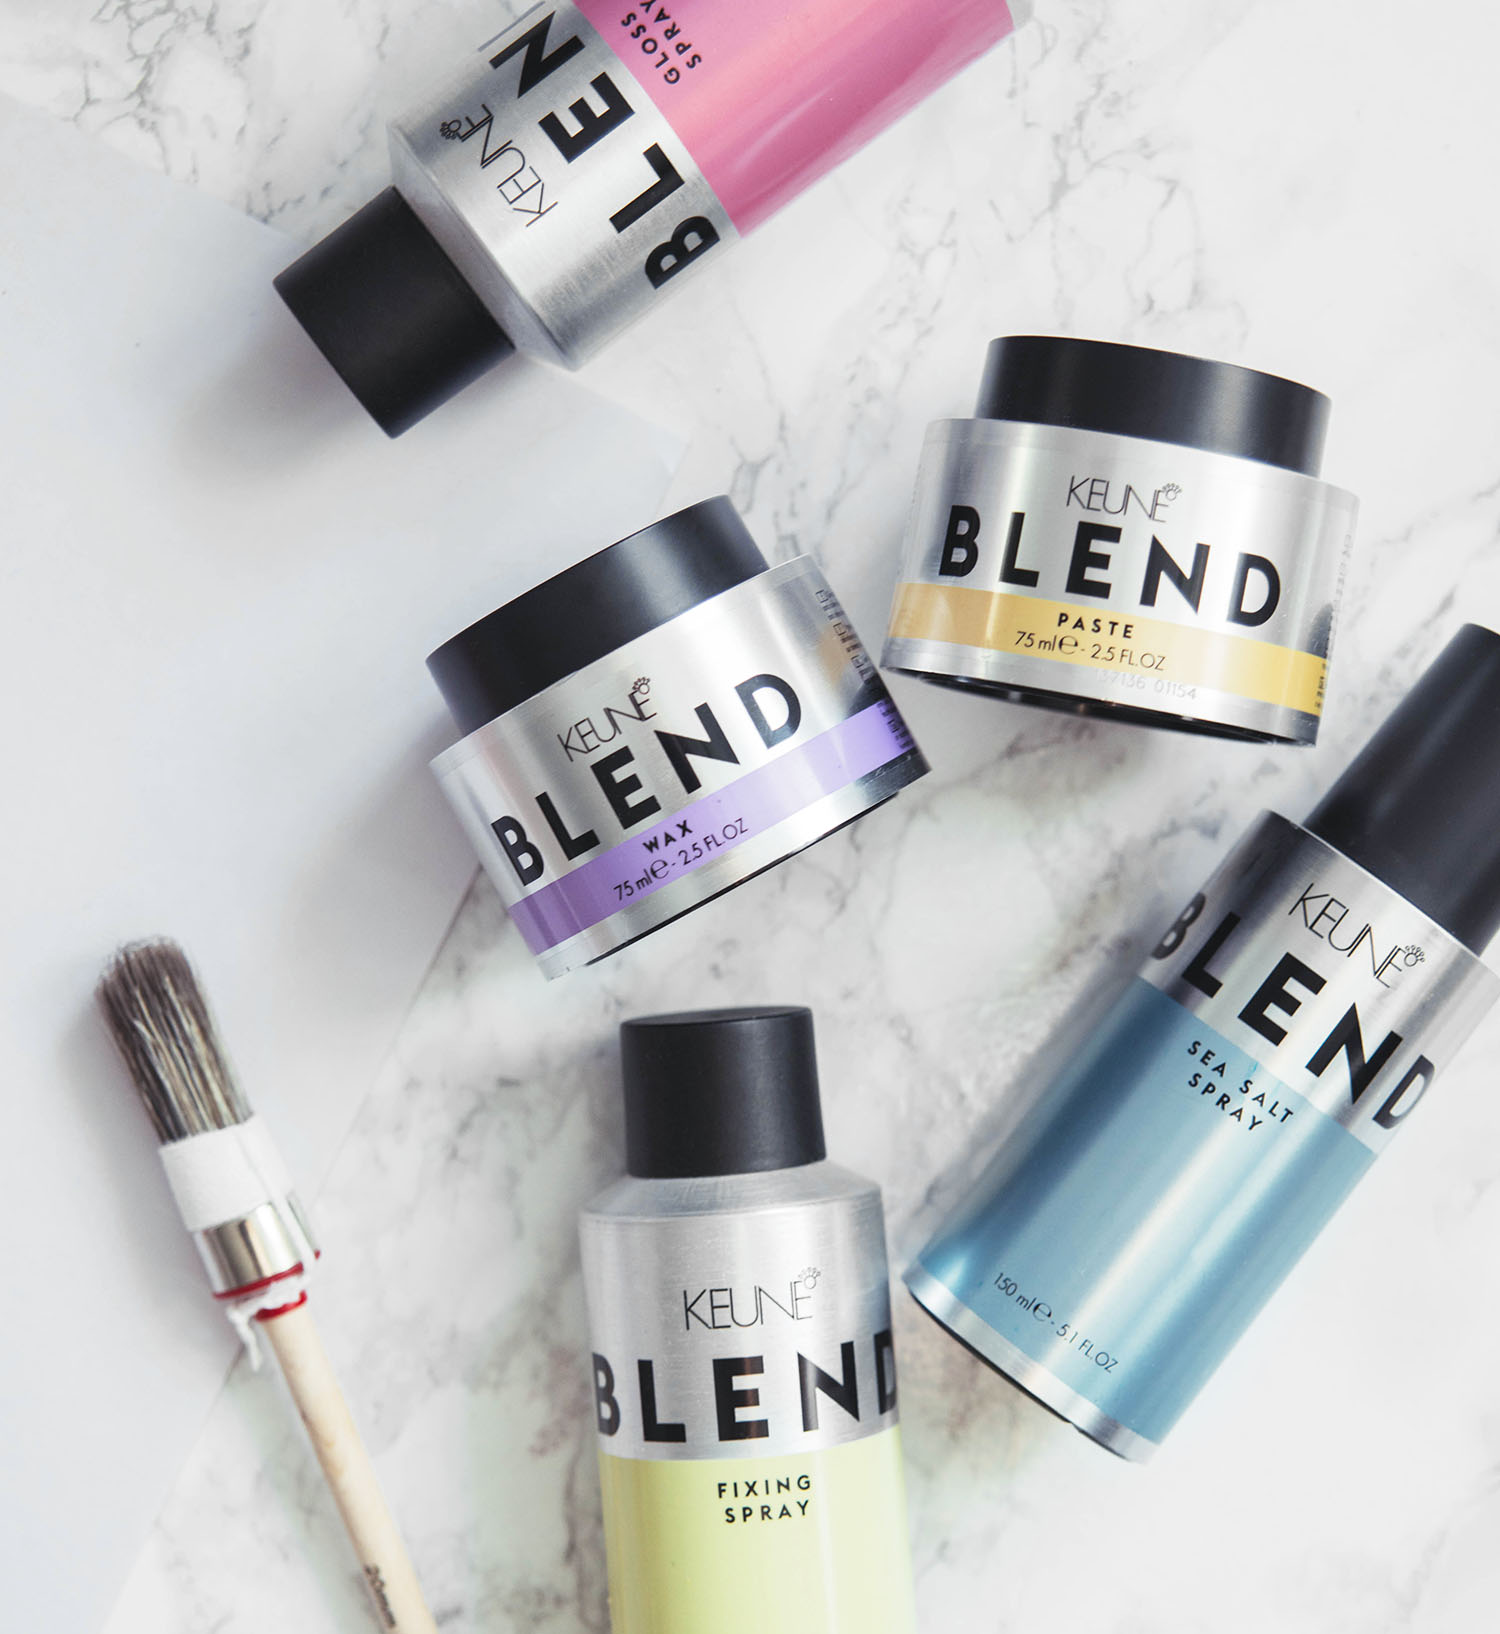 Keune Blend Hair Styling Products